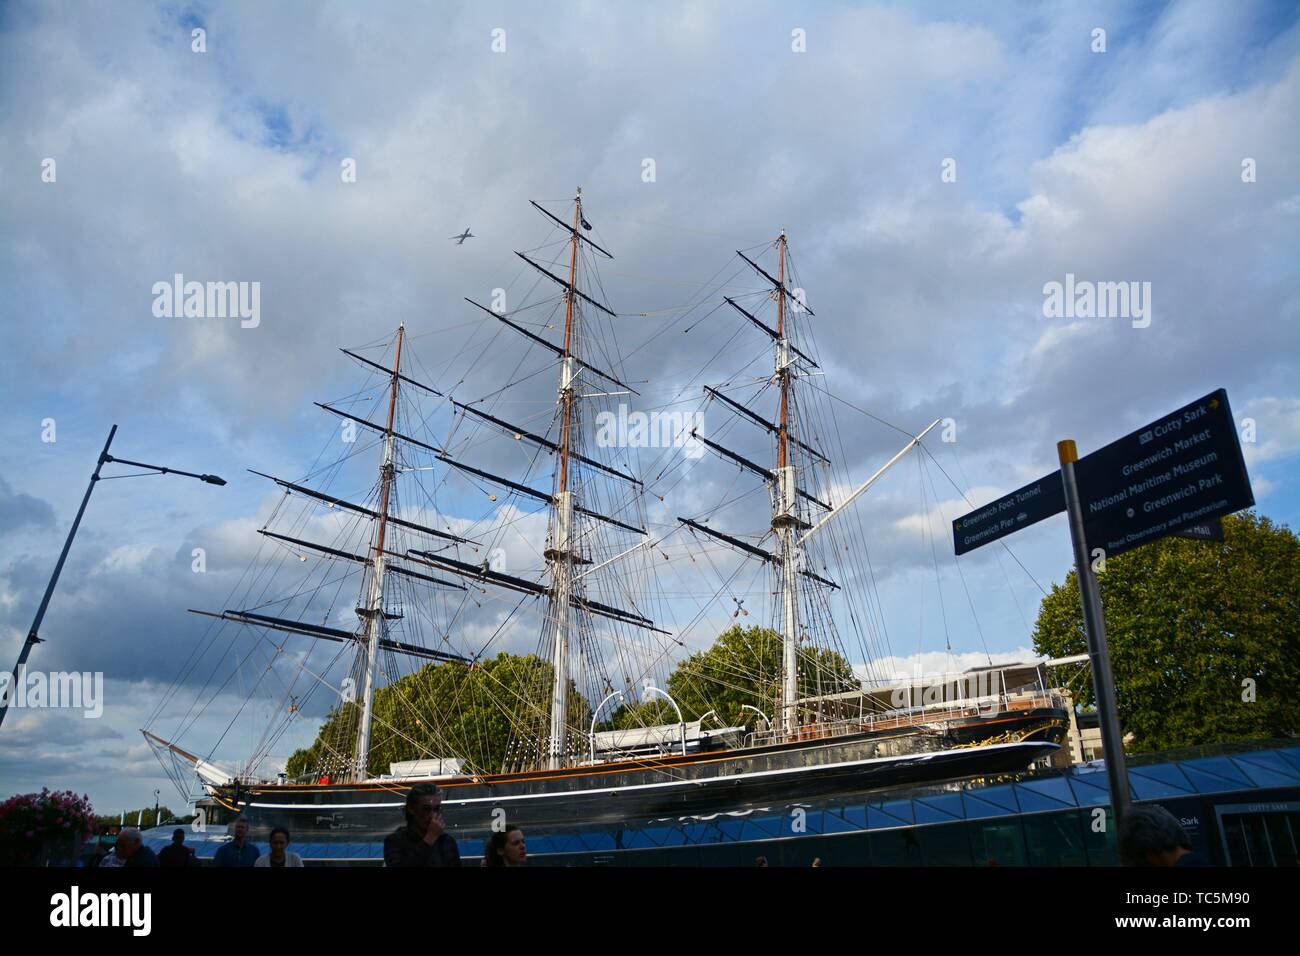 British Clipper ship Cutty Sark at dry dock at Greenwich. London, England, Great Britain, Europe. - Stock Image